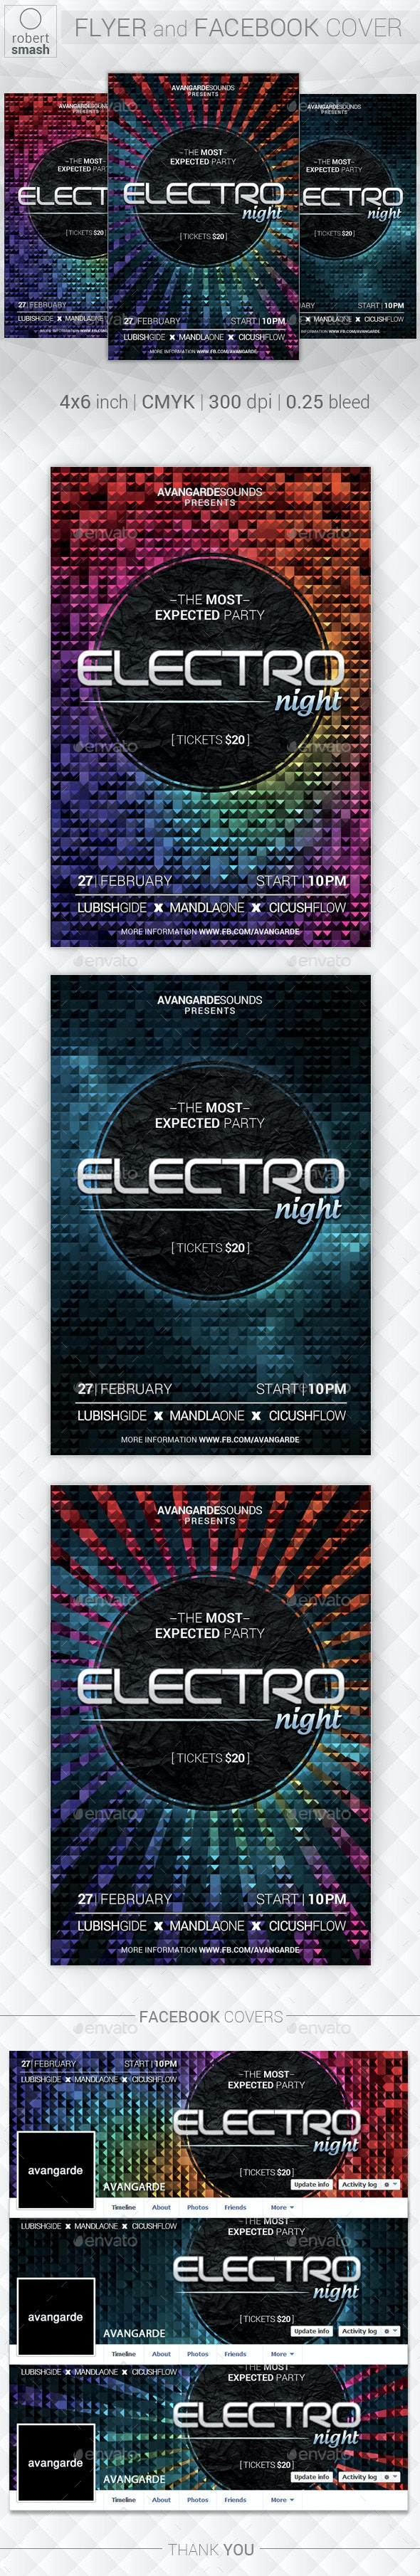 Electro Night Music Flyer - Clubs & Parties Events